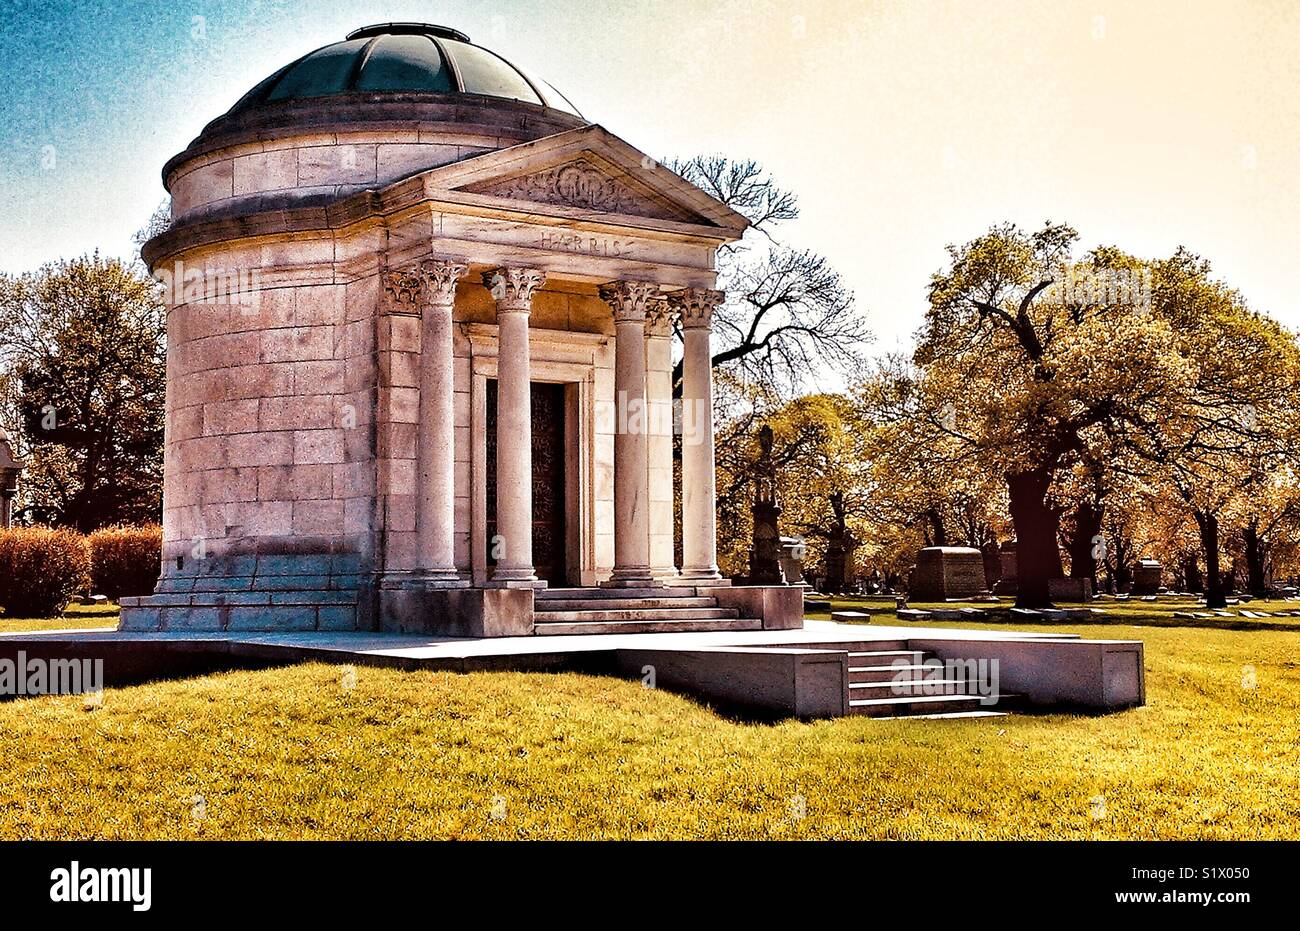 Mausoleum in Rosehill Cemetery, Chicago, Illinois Stock Photo